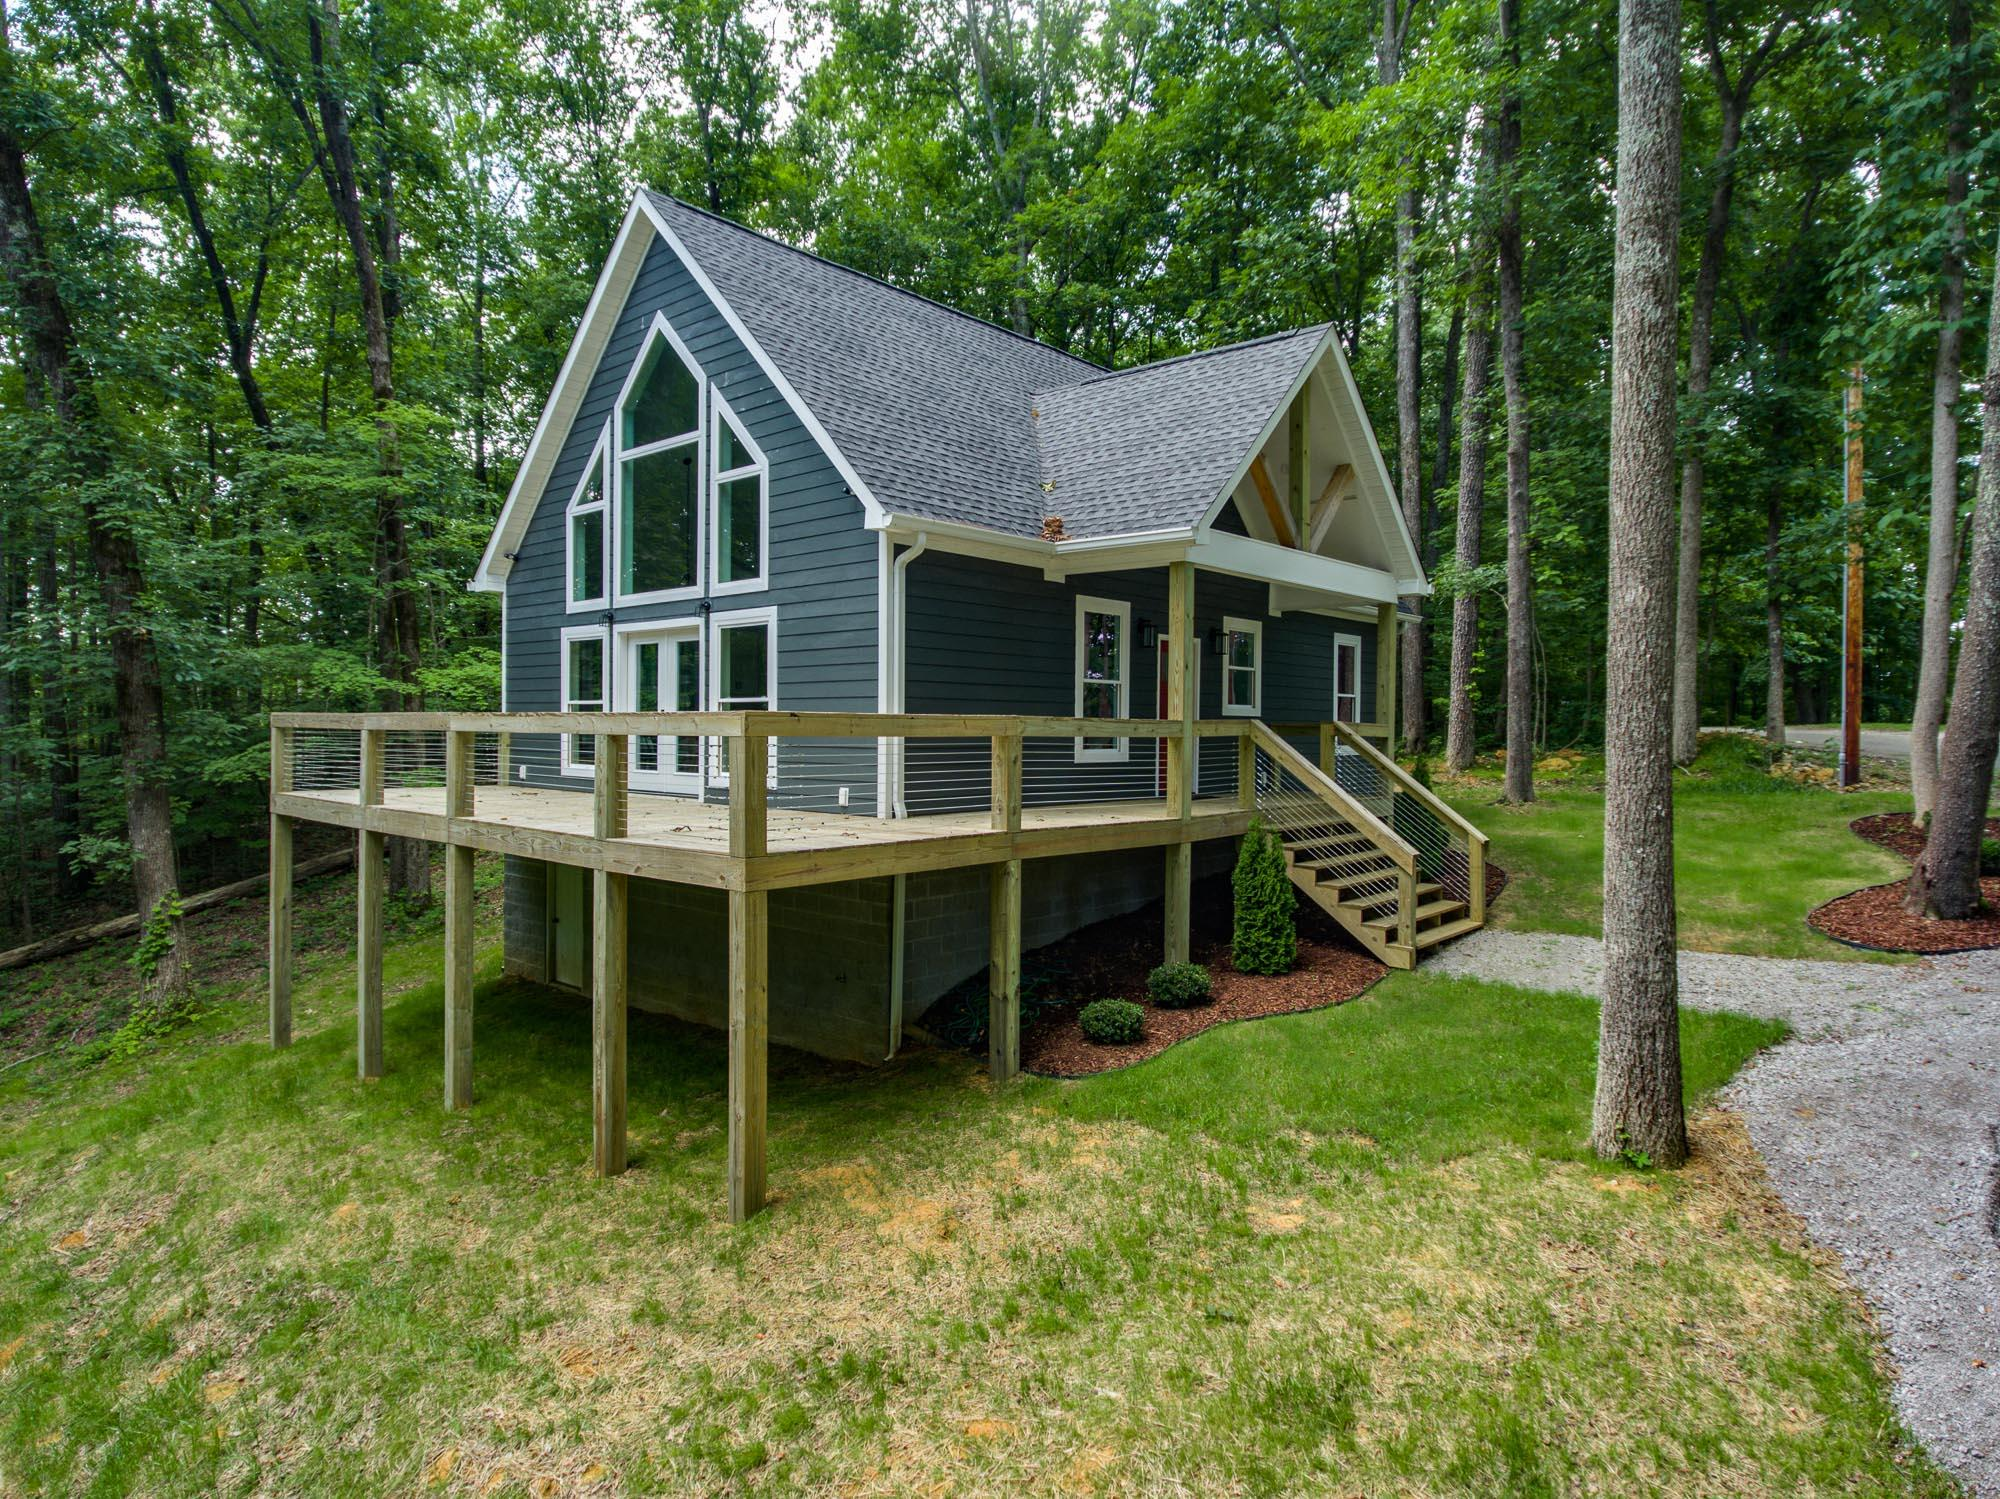 420 Holiday Haven Dr, Smithville, TN 37166 - Smithville, TN real estate listing